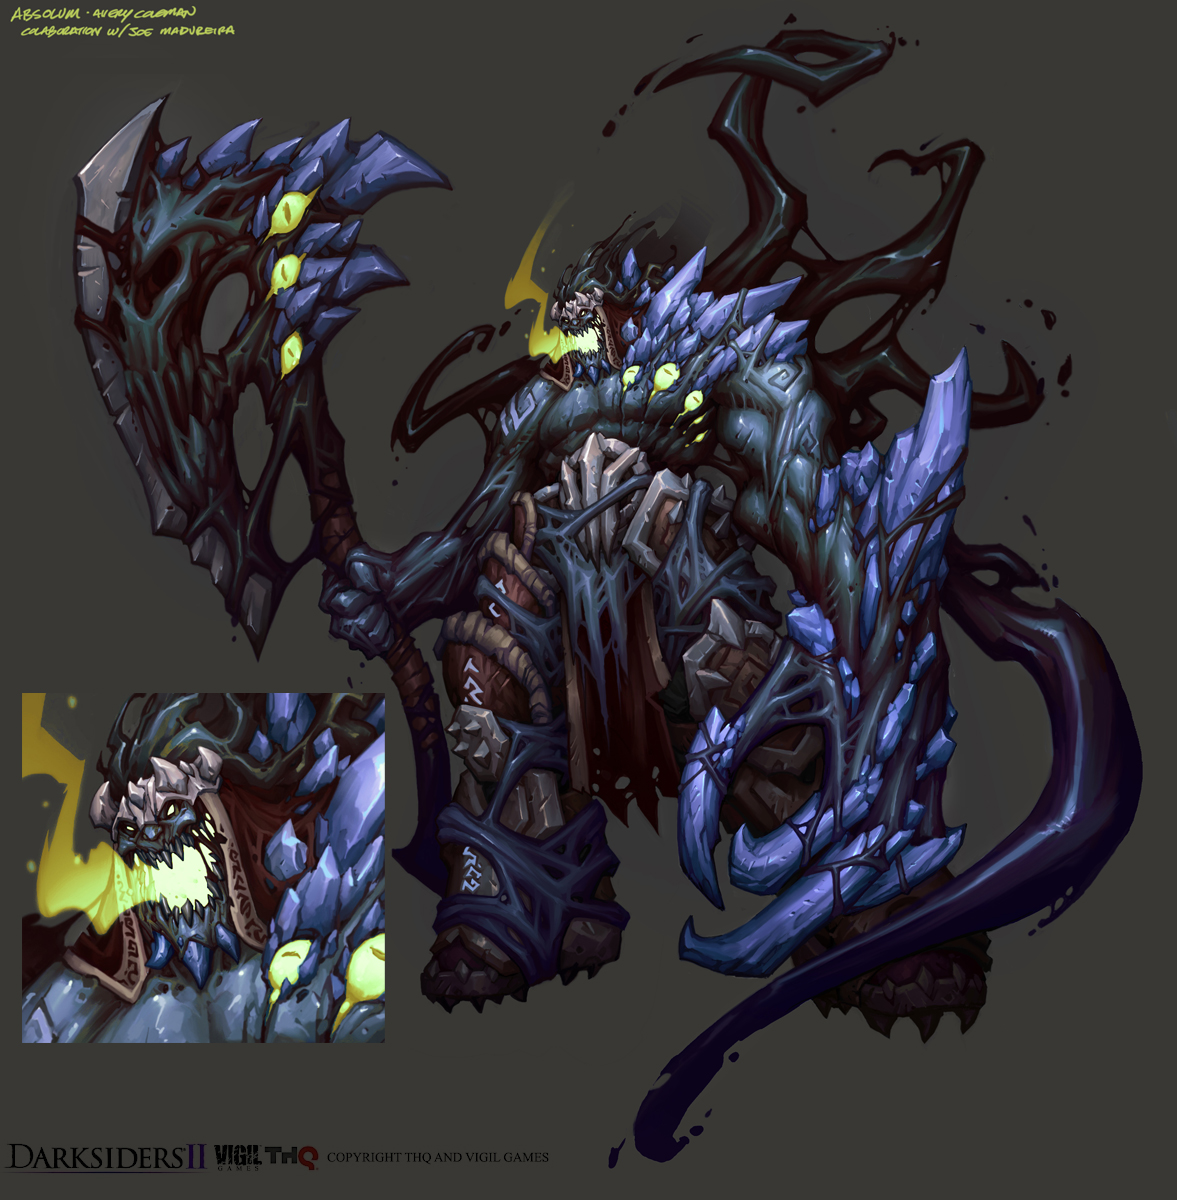 The Lantern Factory: Darksiders 2 Concept Art - The Super DUMP